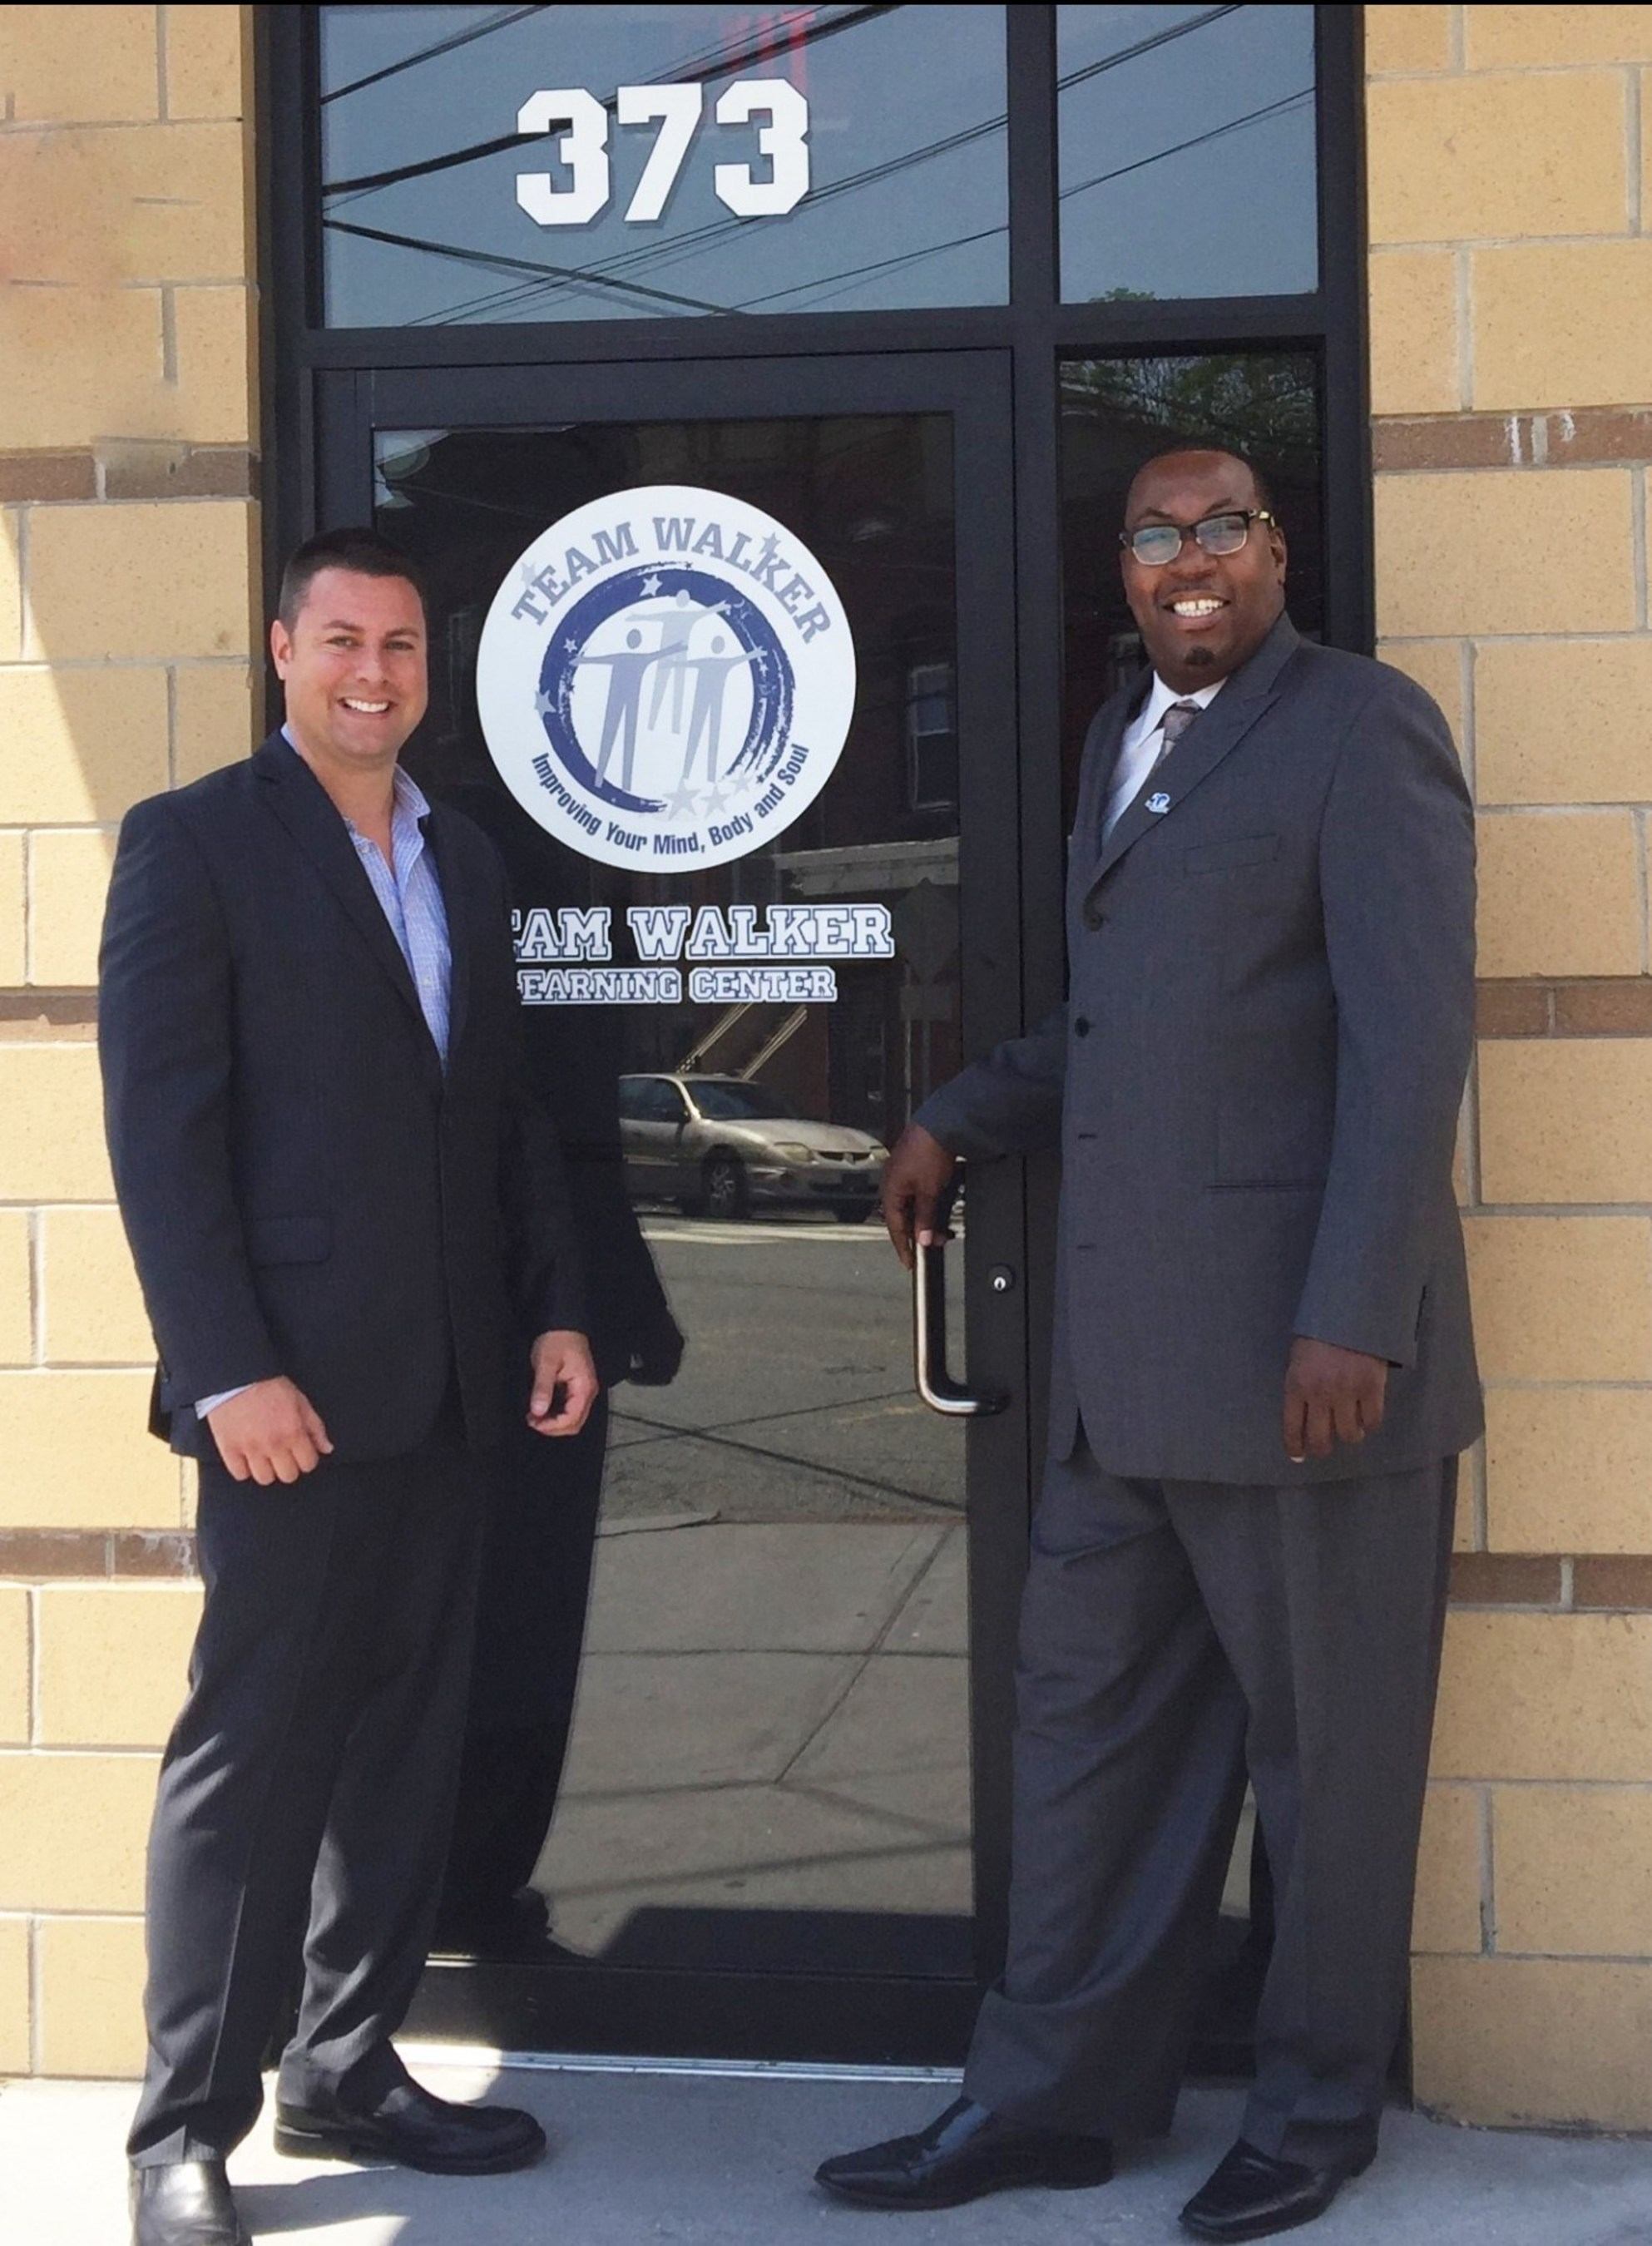 Craig McGraw and President Jerry Walker at the Team Walker House Jersey City NJ